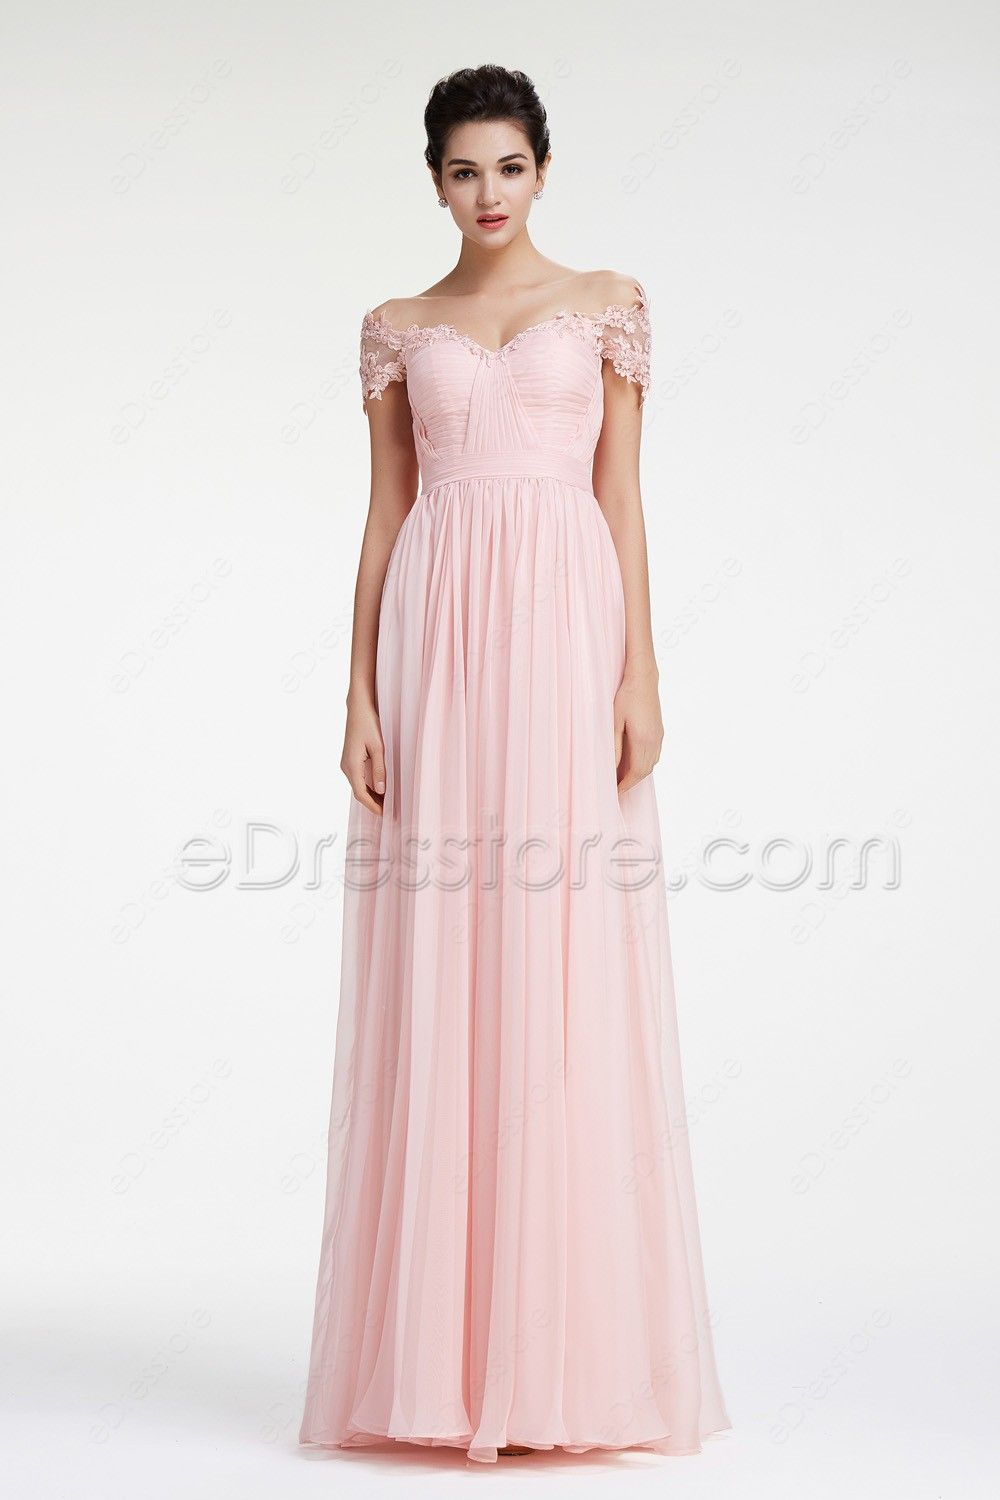 Soft Pink Off The Shoulder Prom Dresses Clothes Shoes